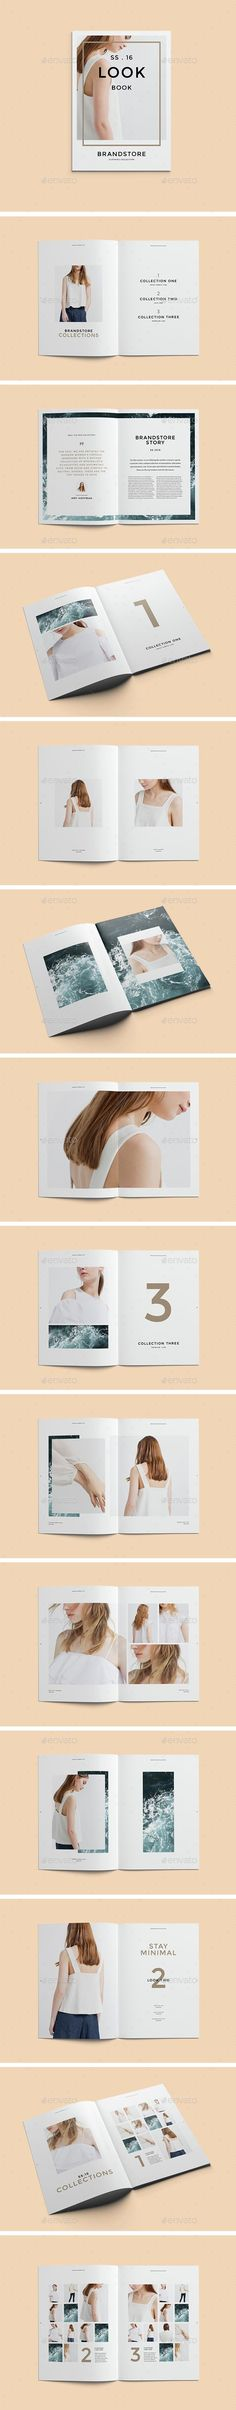 Fashion Lookbook Template InDesign INDD. Download here: http://graphicriver.net/item/fashion-lookbook/15042234?ref=ksioks